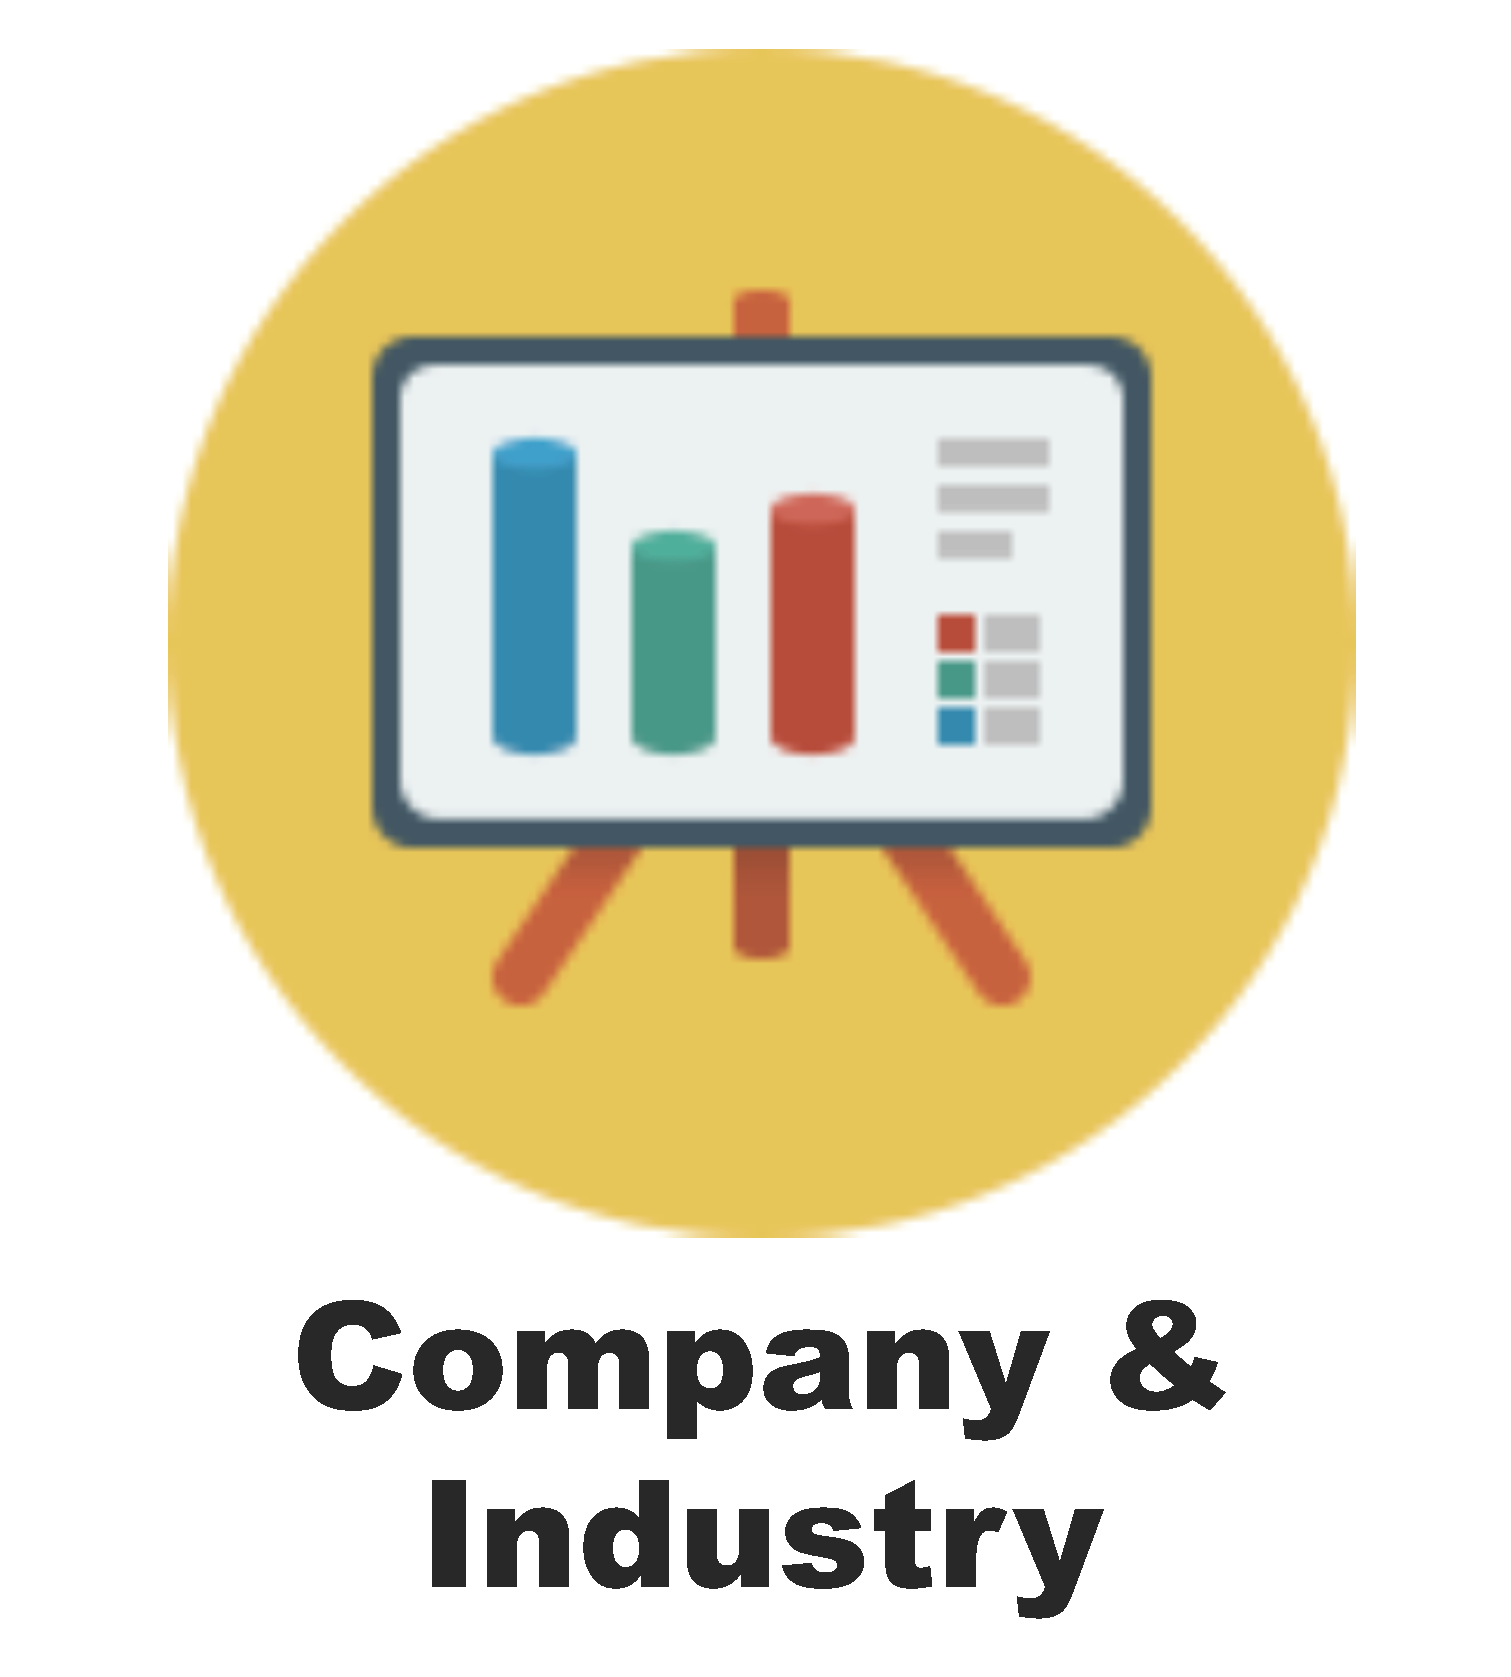 Company and industry information link